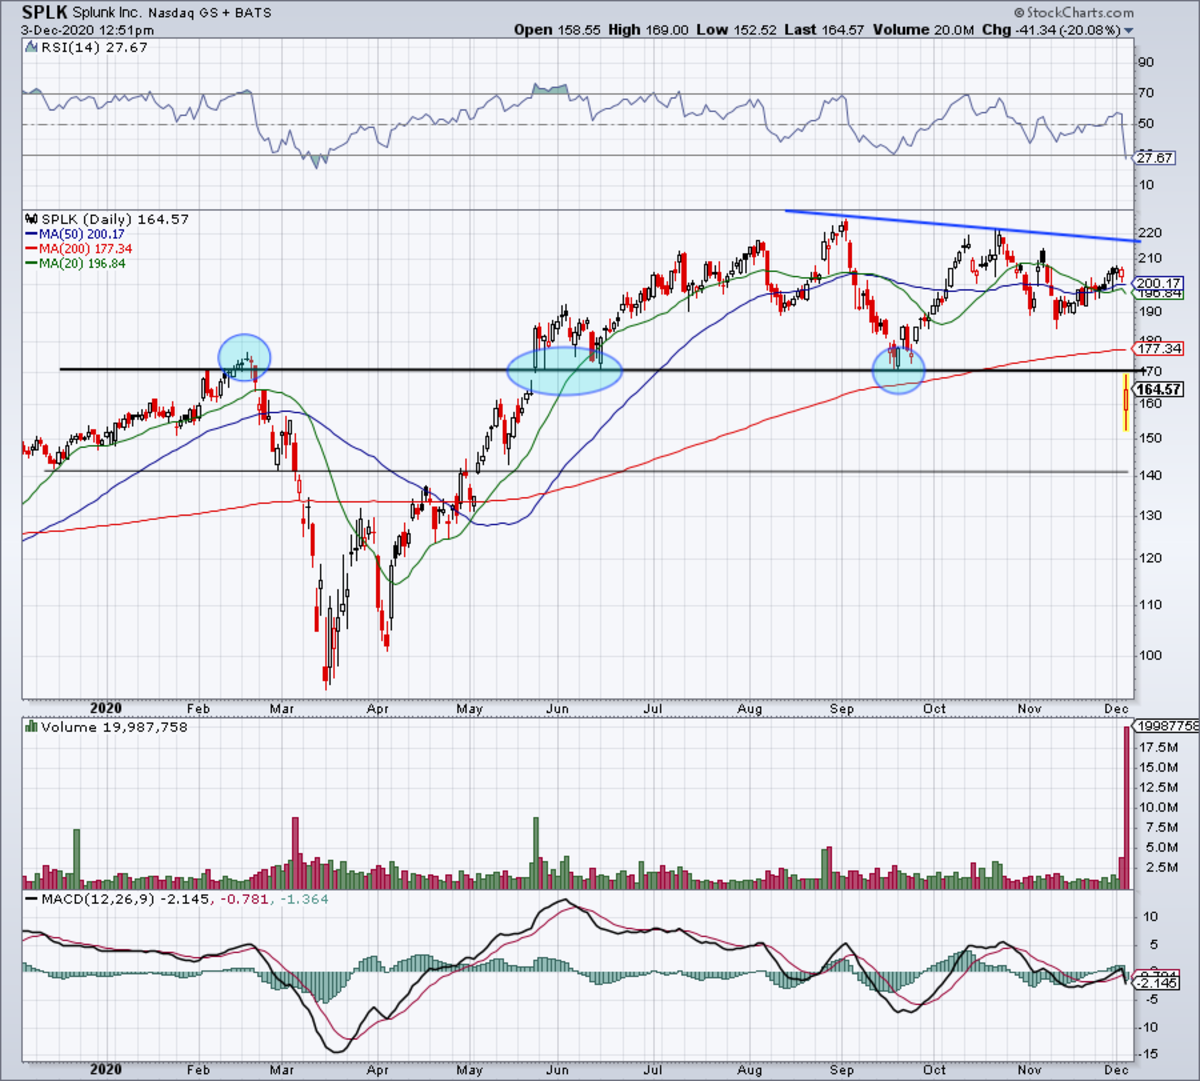 Daily chart of Splunk stock.